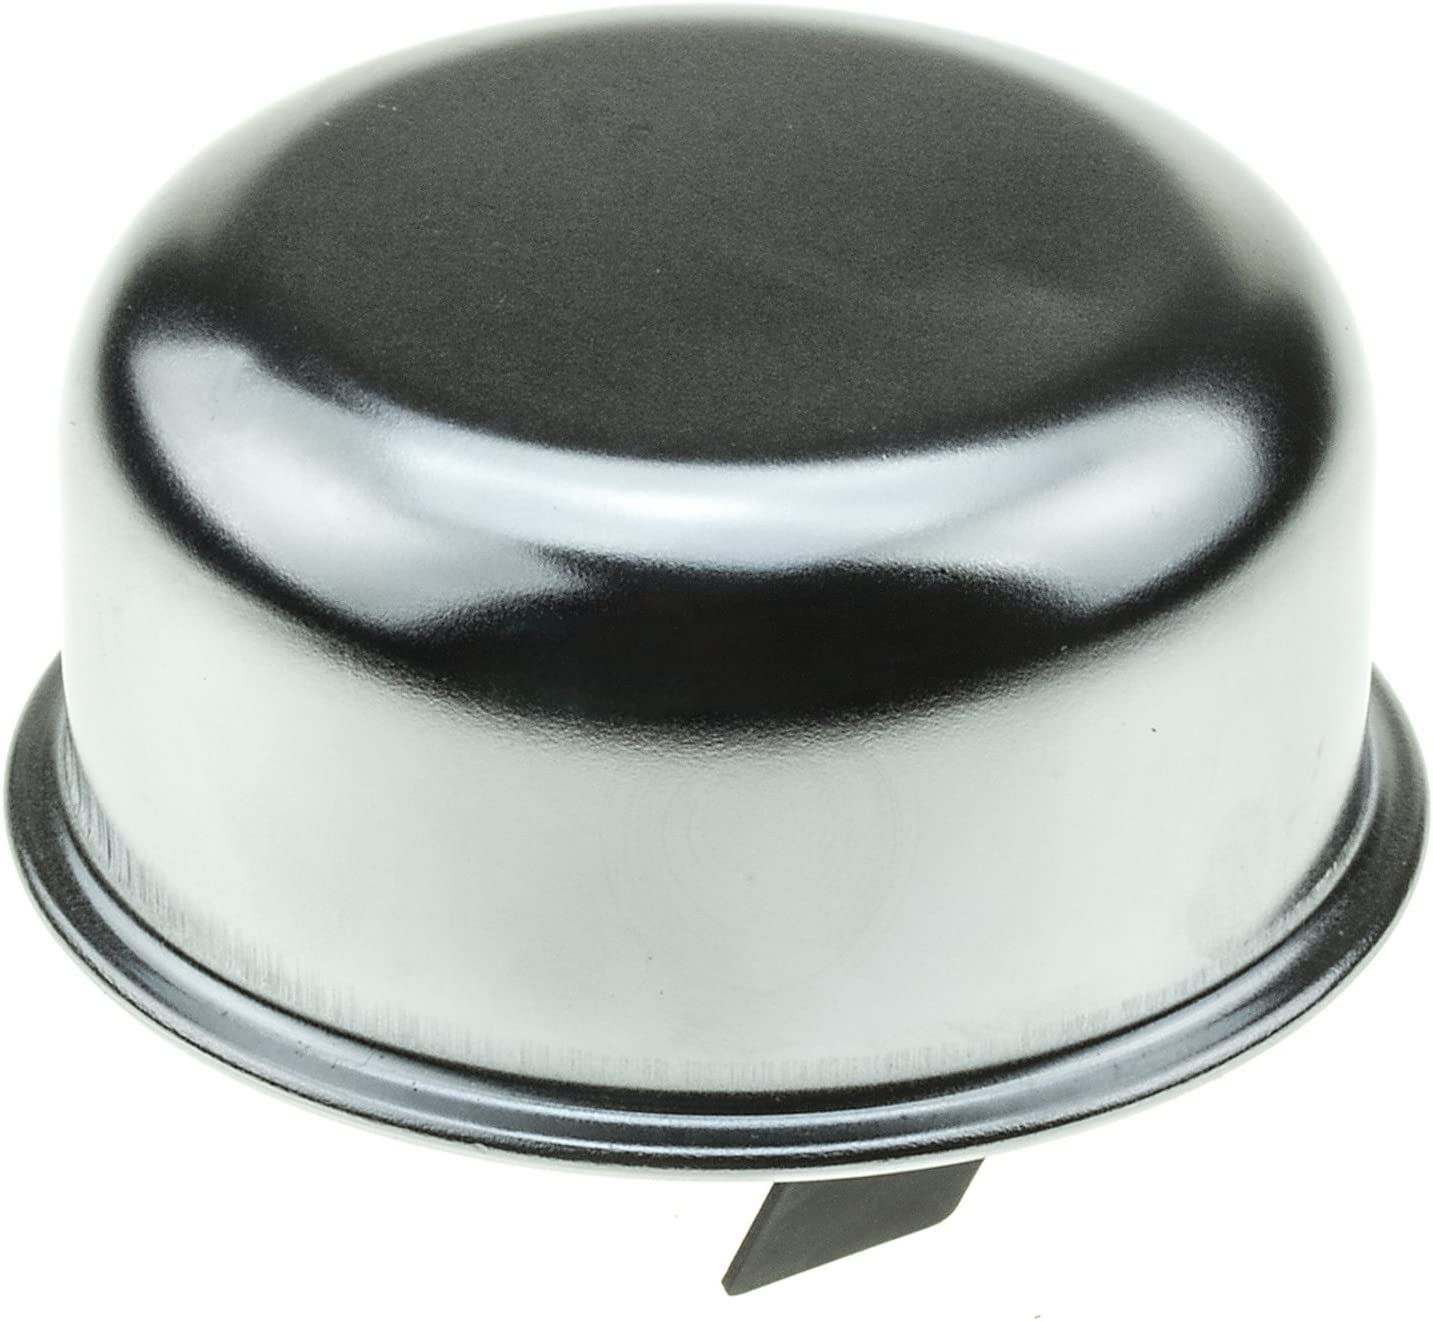 1 New Stant OE Replacement Oil Filler Cap 10061 Engine Crankcase Breather